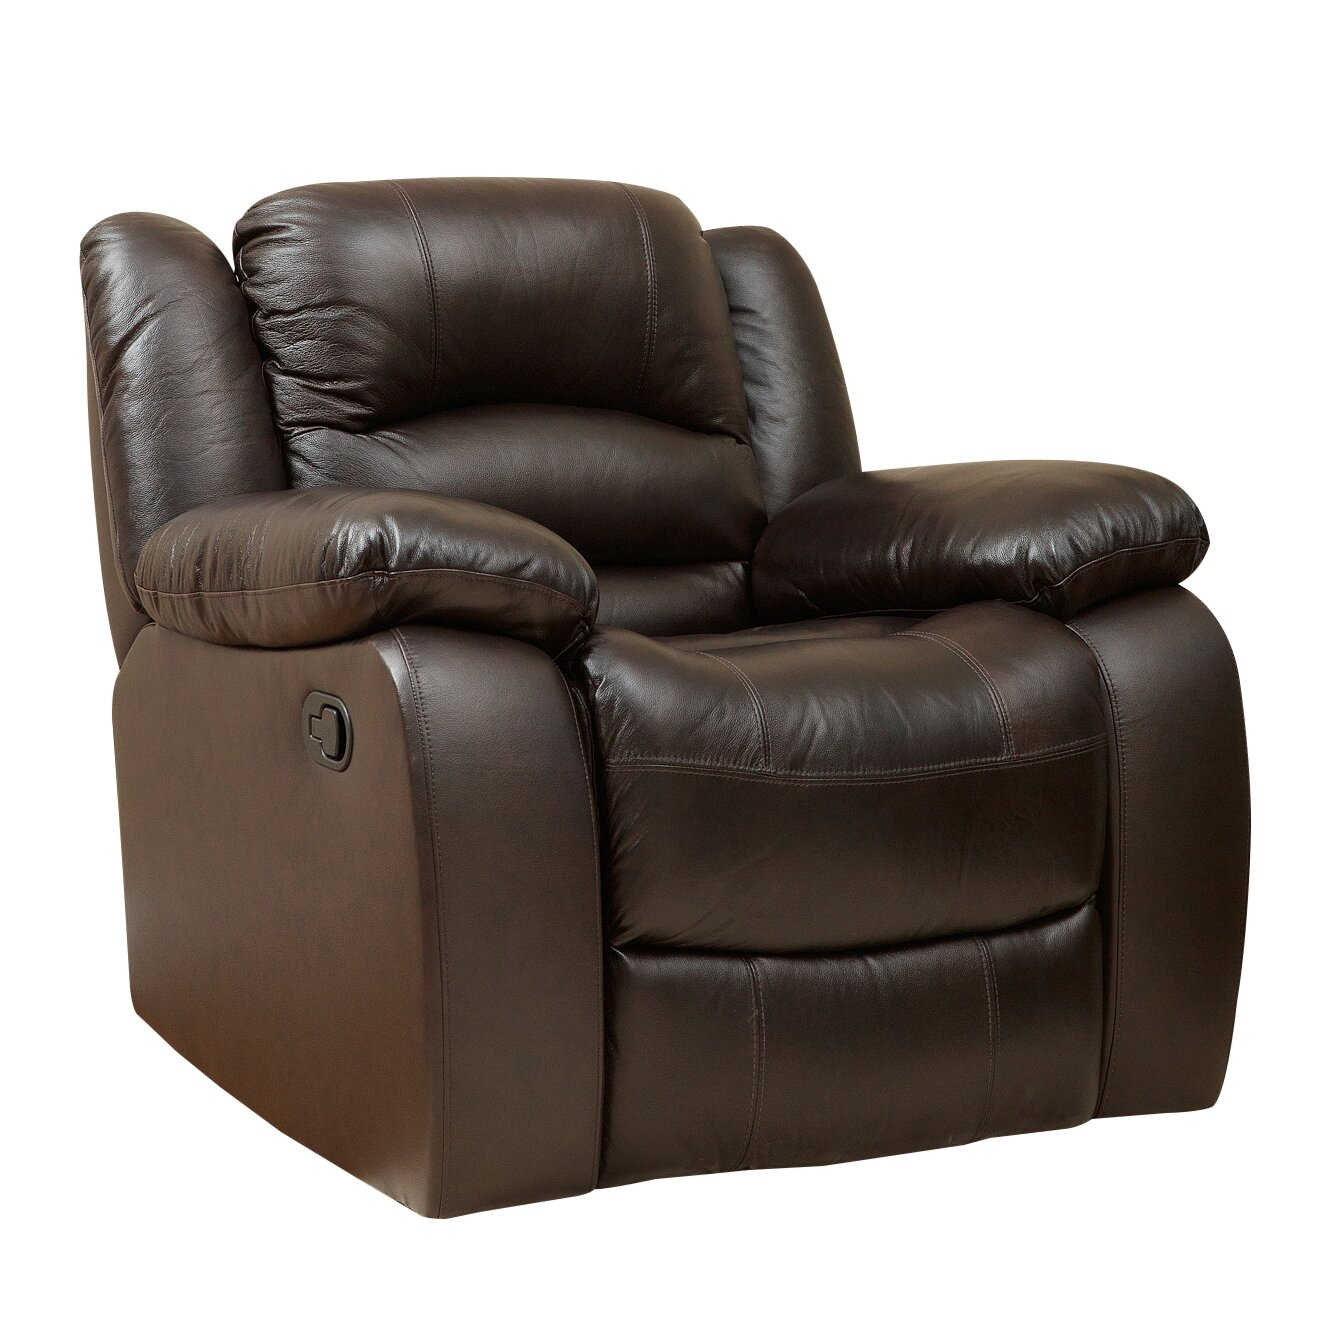 Darby home co jorgensen leather chaise recliner reviews for Chaise and recliner